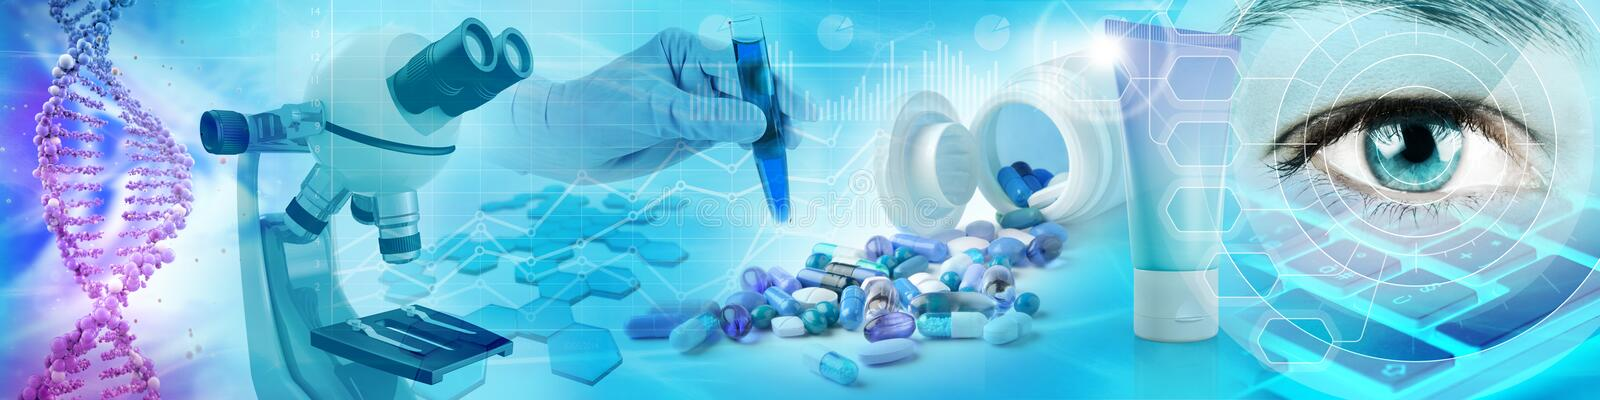 Pharmaceutical and biochemistry research concept. Background 3d illustration stock illustration